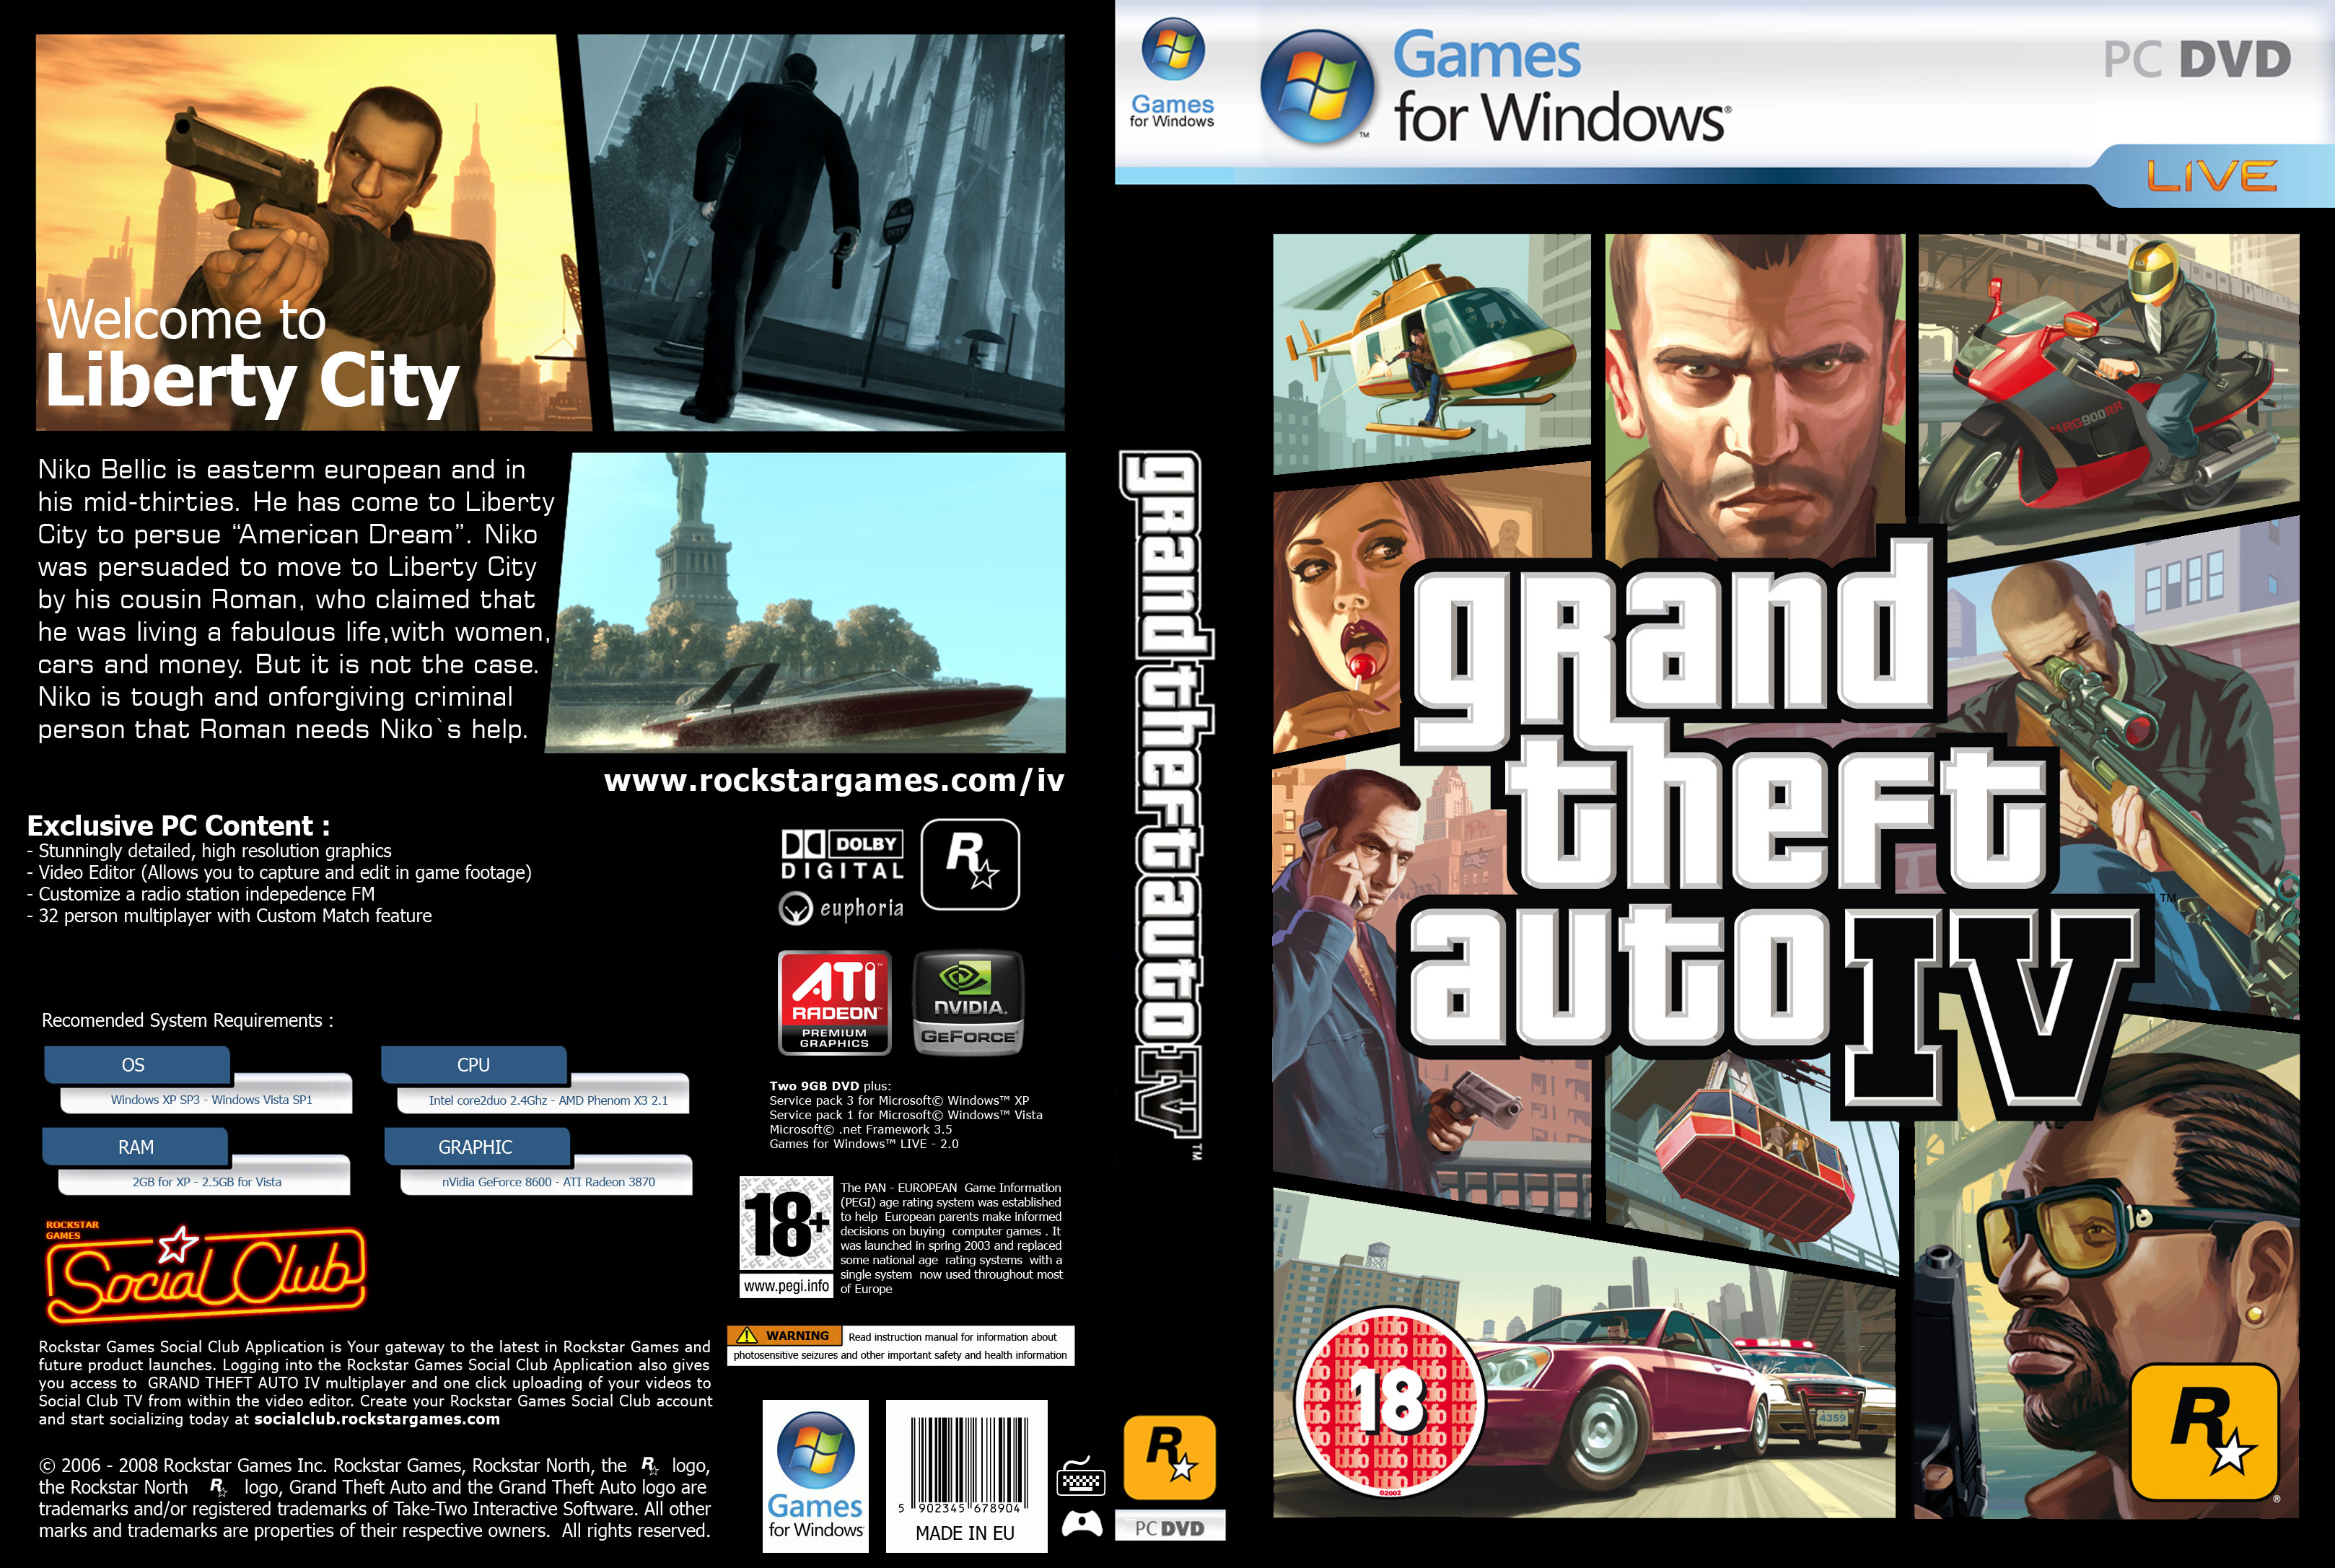 Grand theft auto 4 full game download for pc